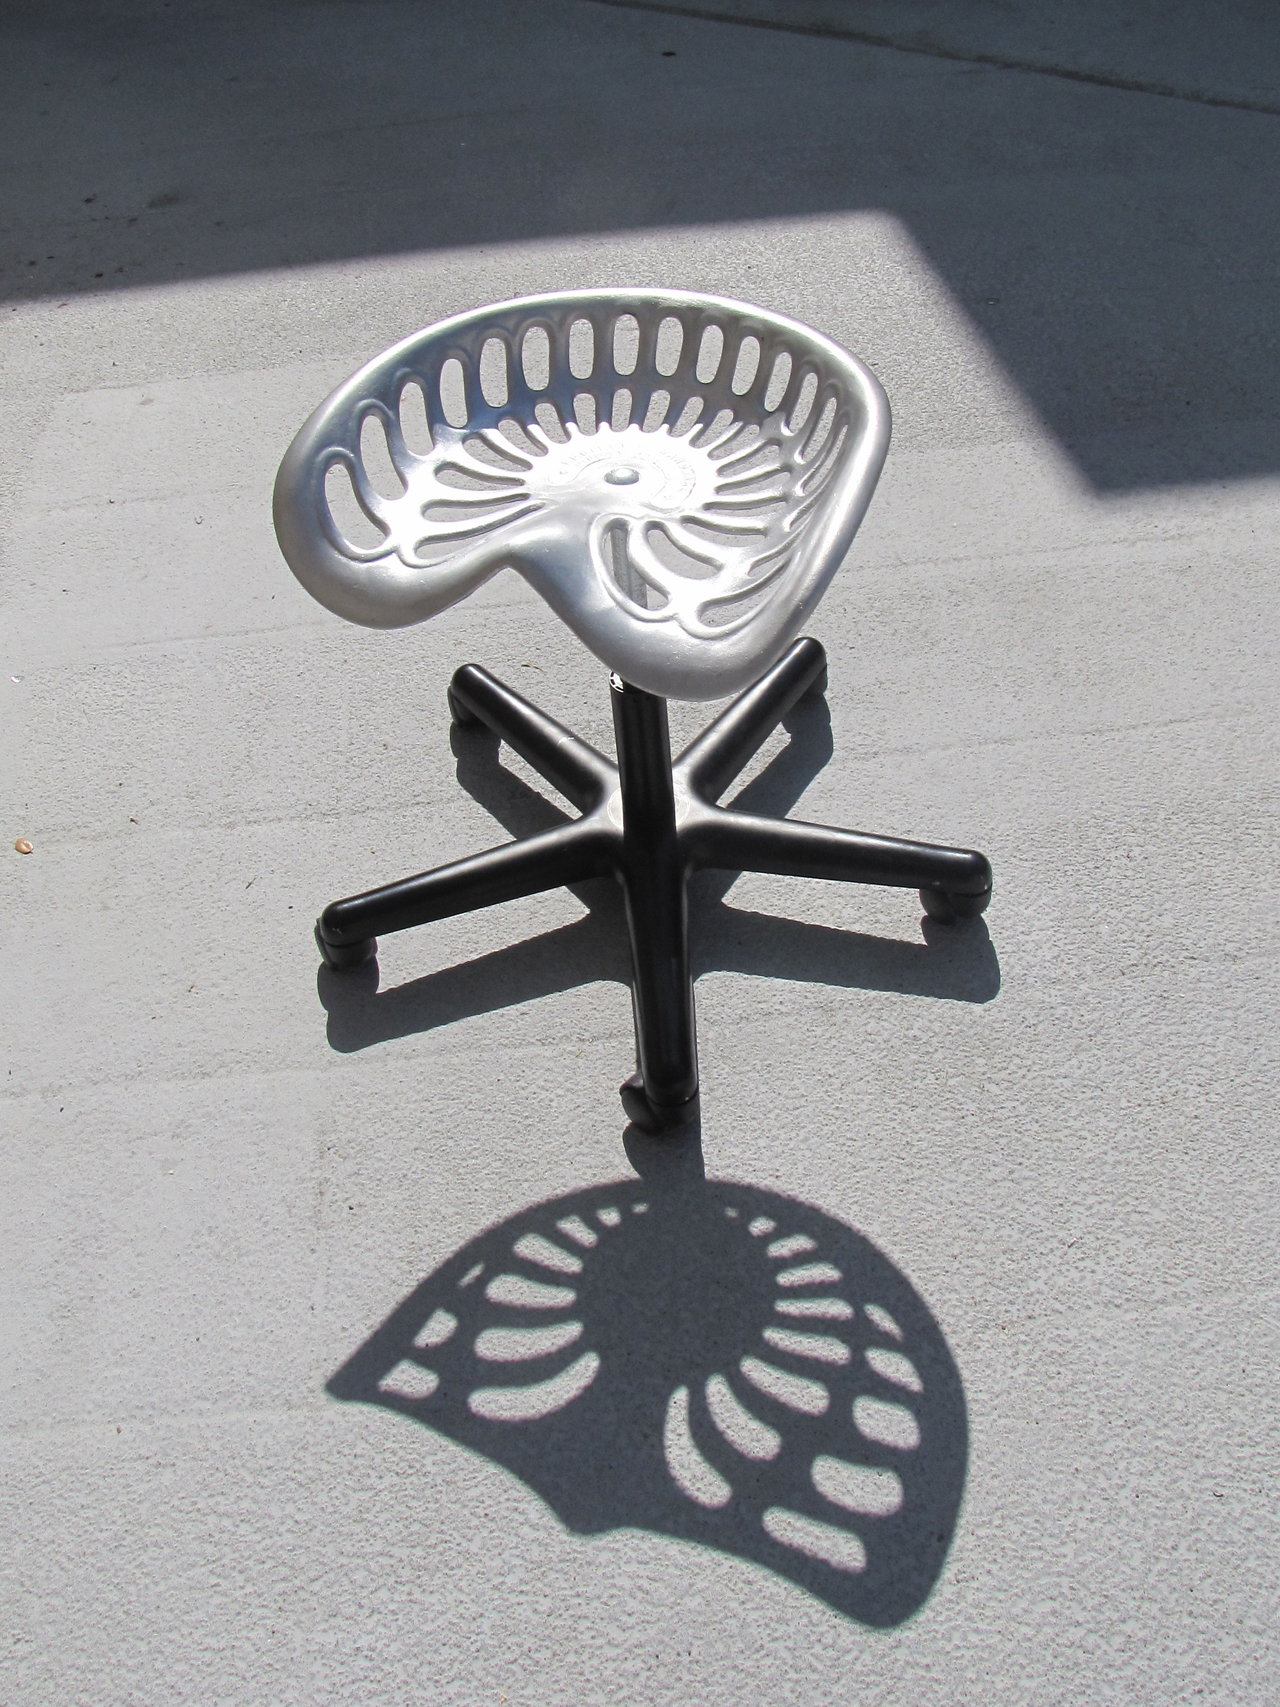 20100428 Tractor seat stool